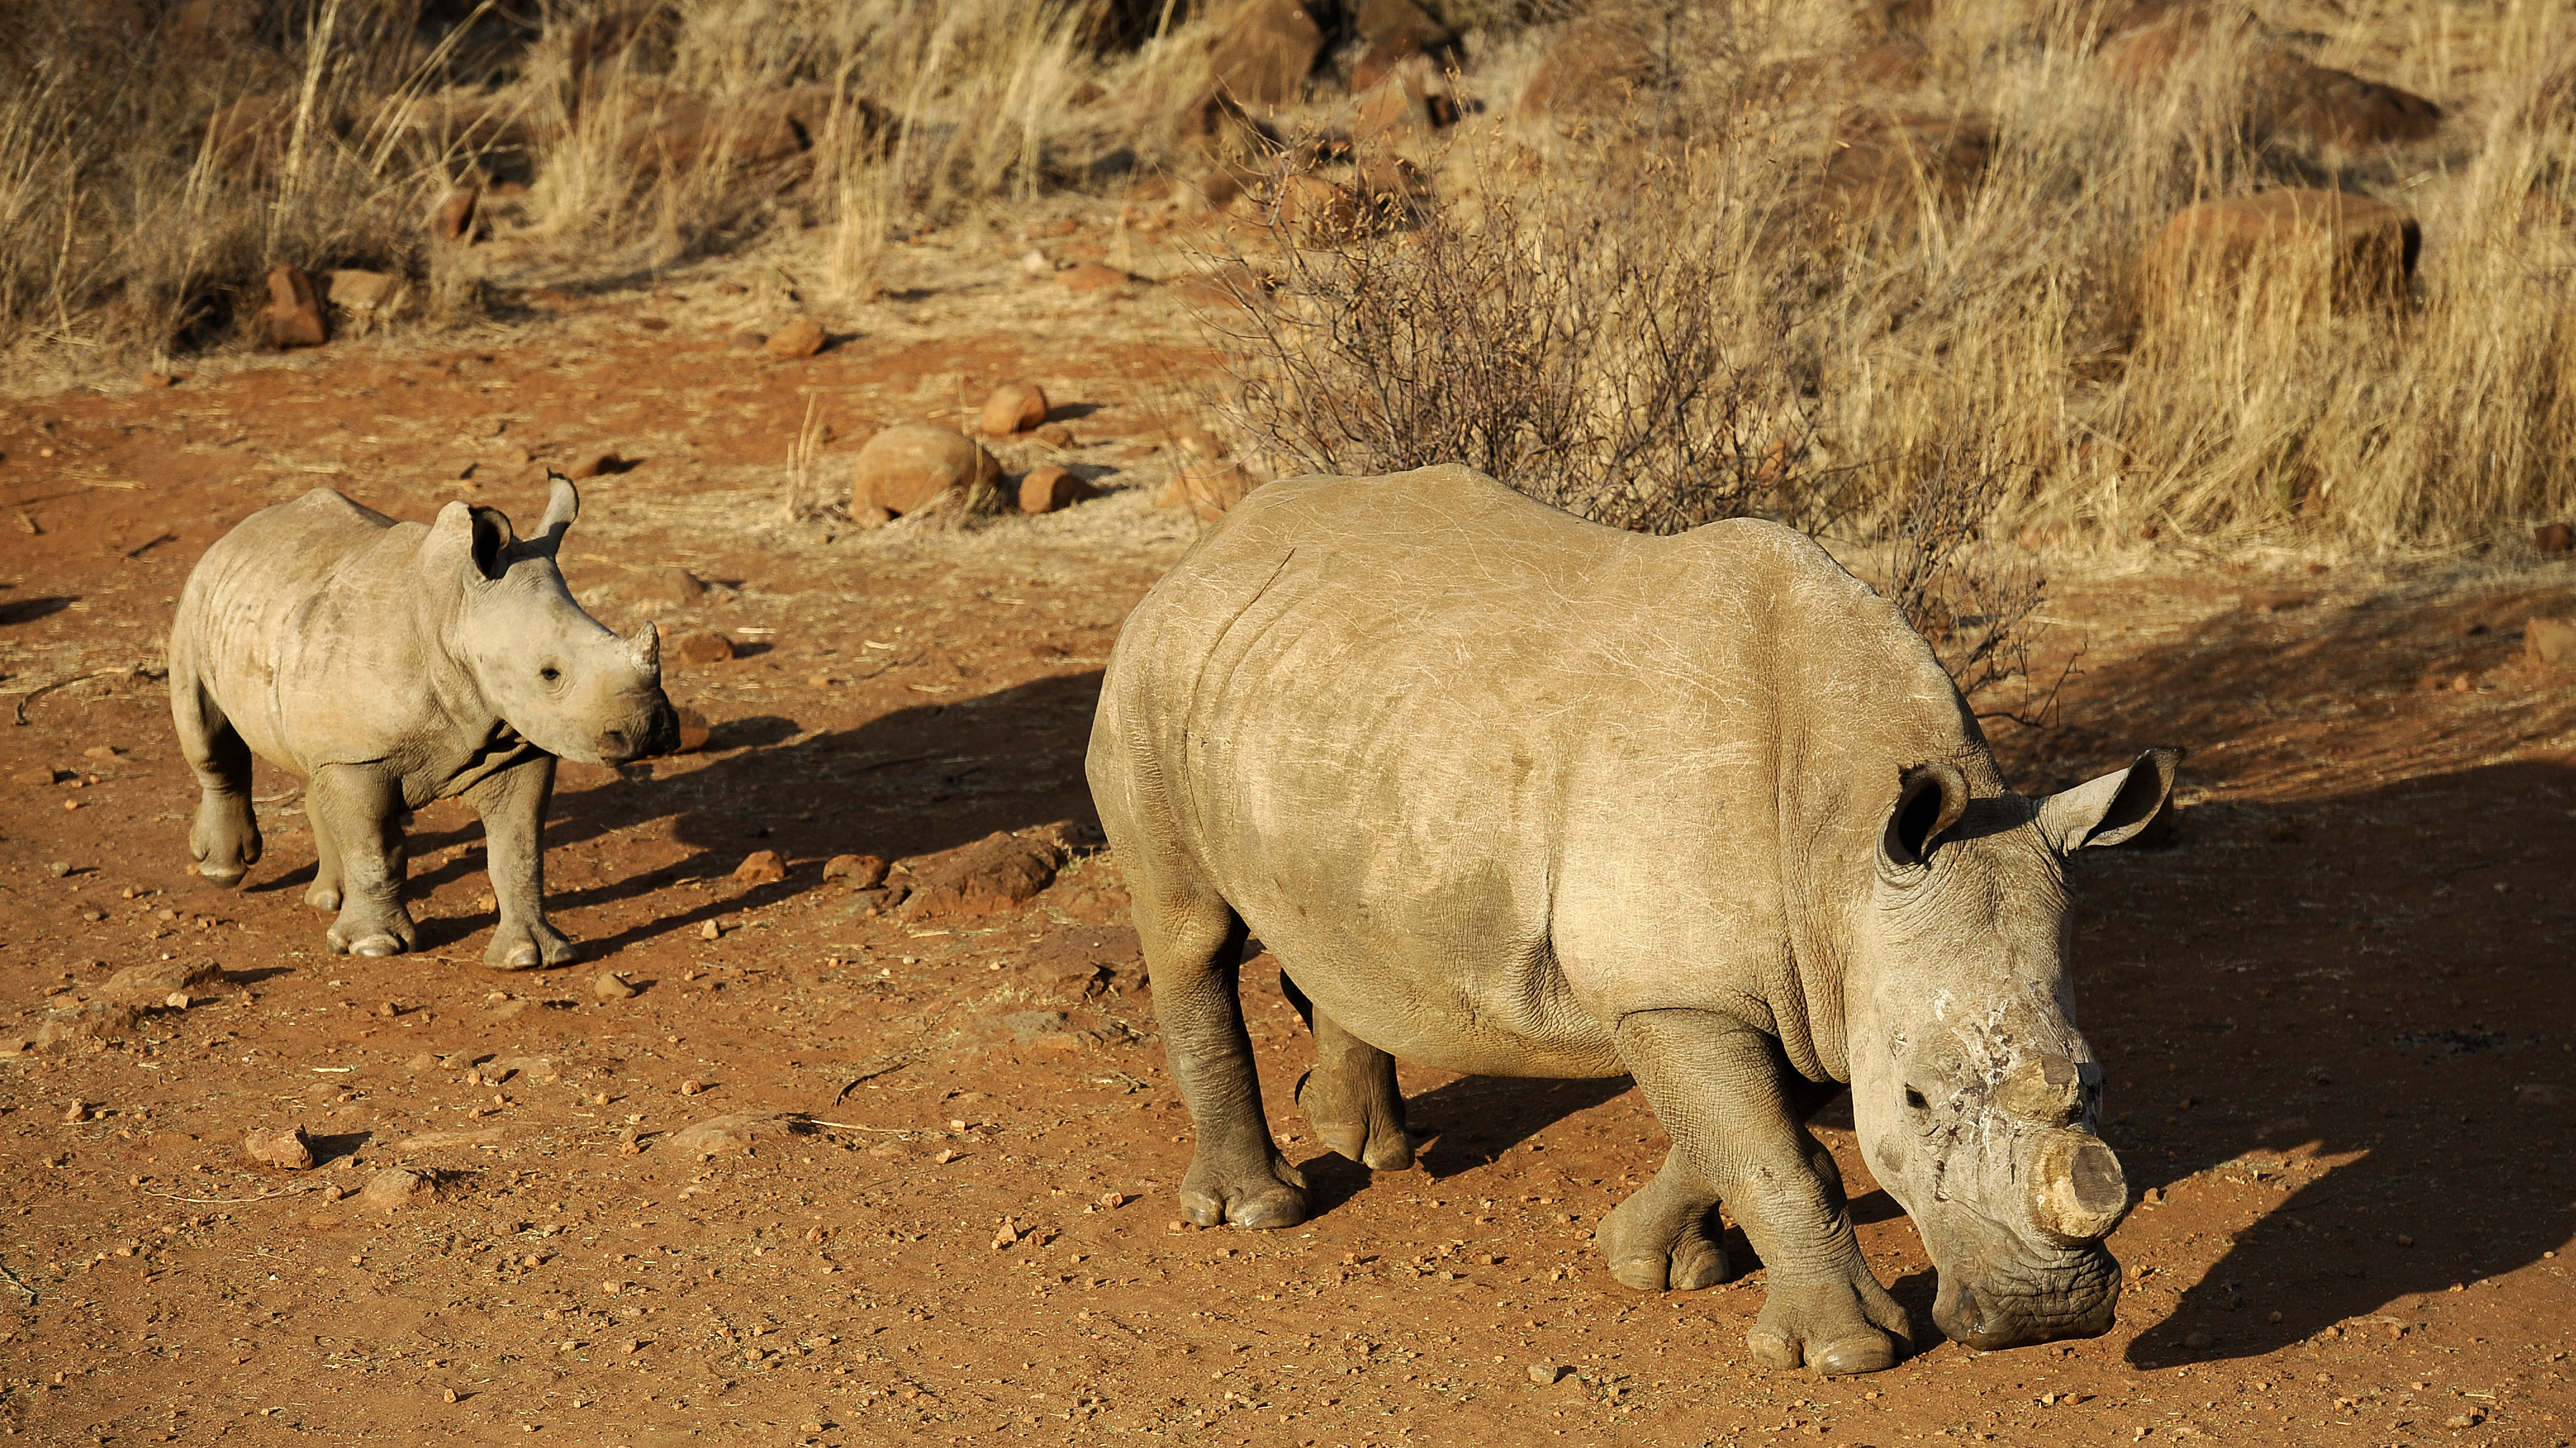 Can Economics Save The African Rhino?